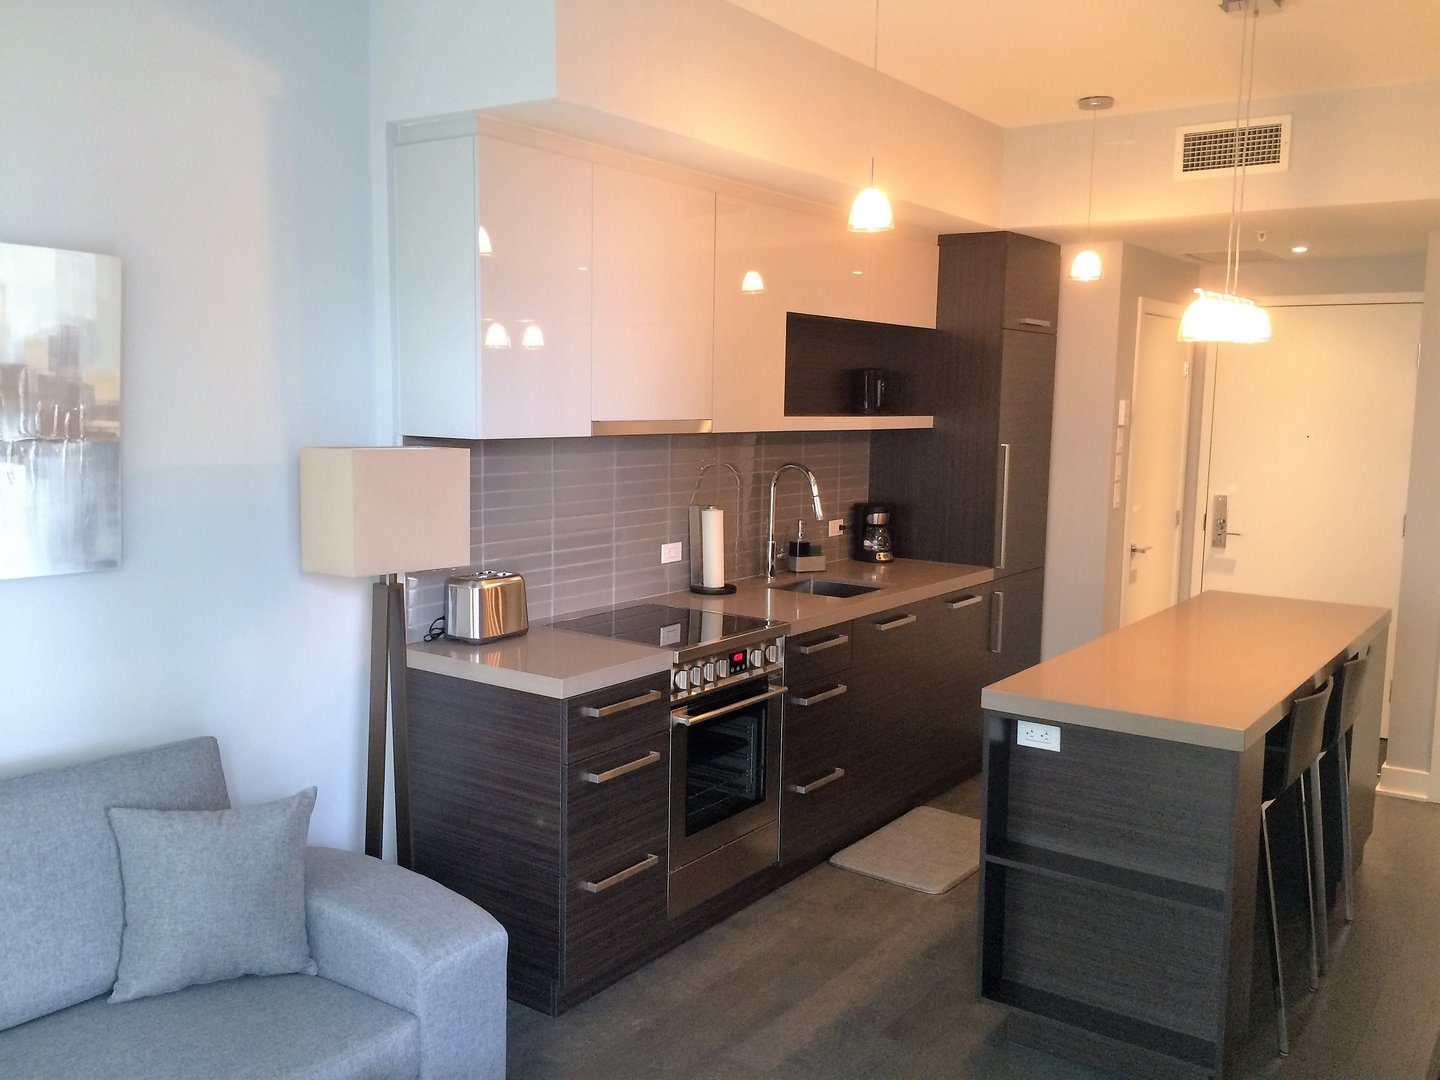 Condo for rent at 1050 Rue Drummond, Montréal, QC. This is the kitchen with stainless steel and carpet.